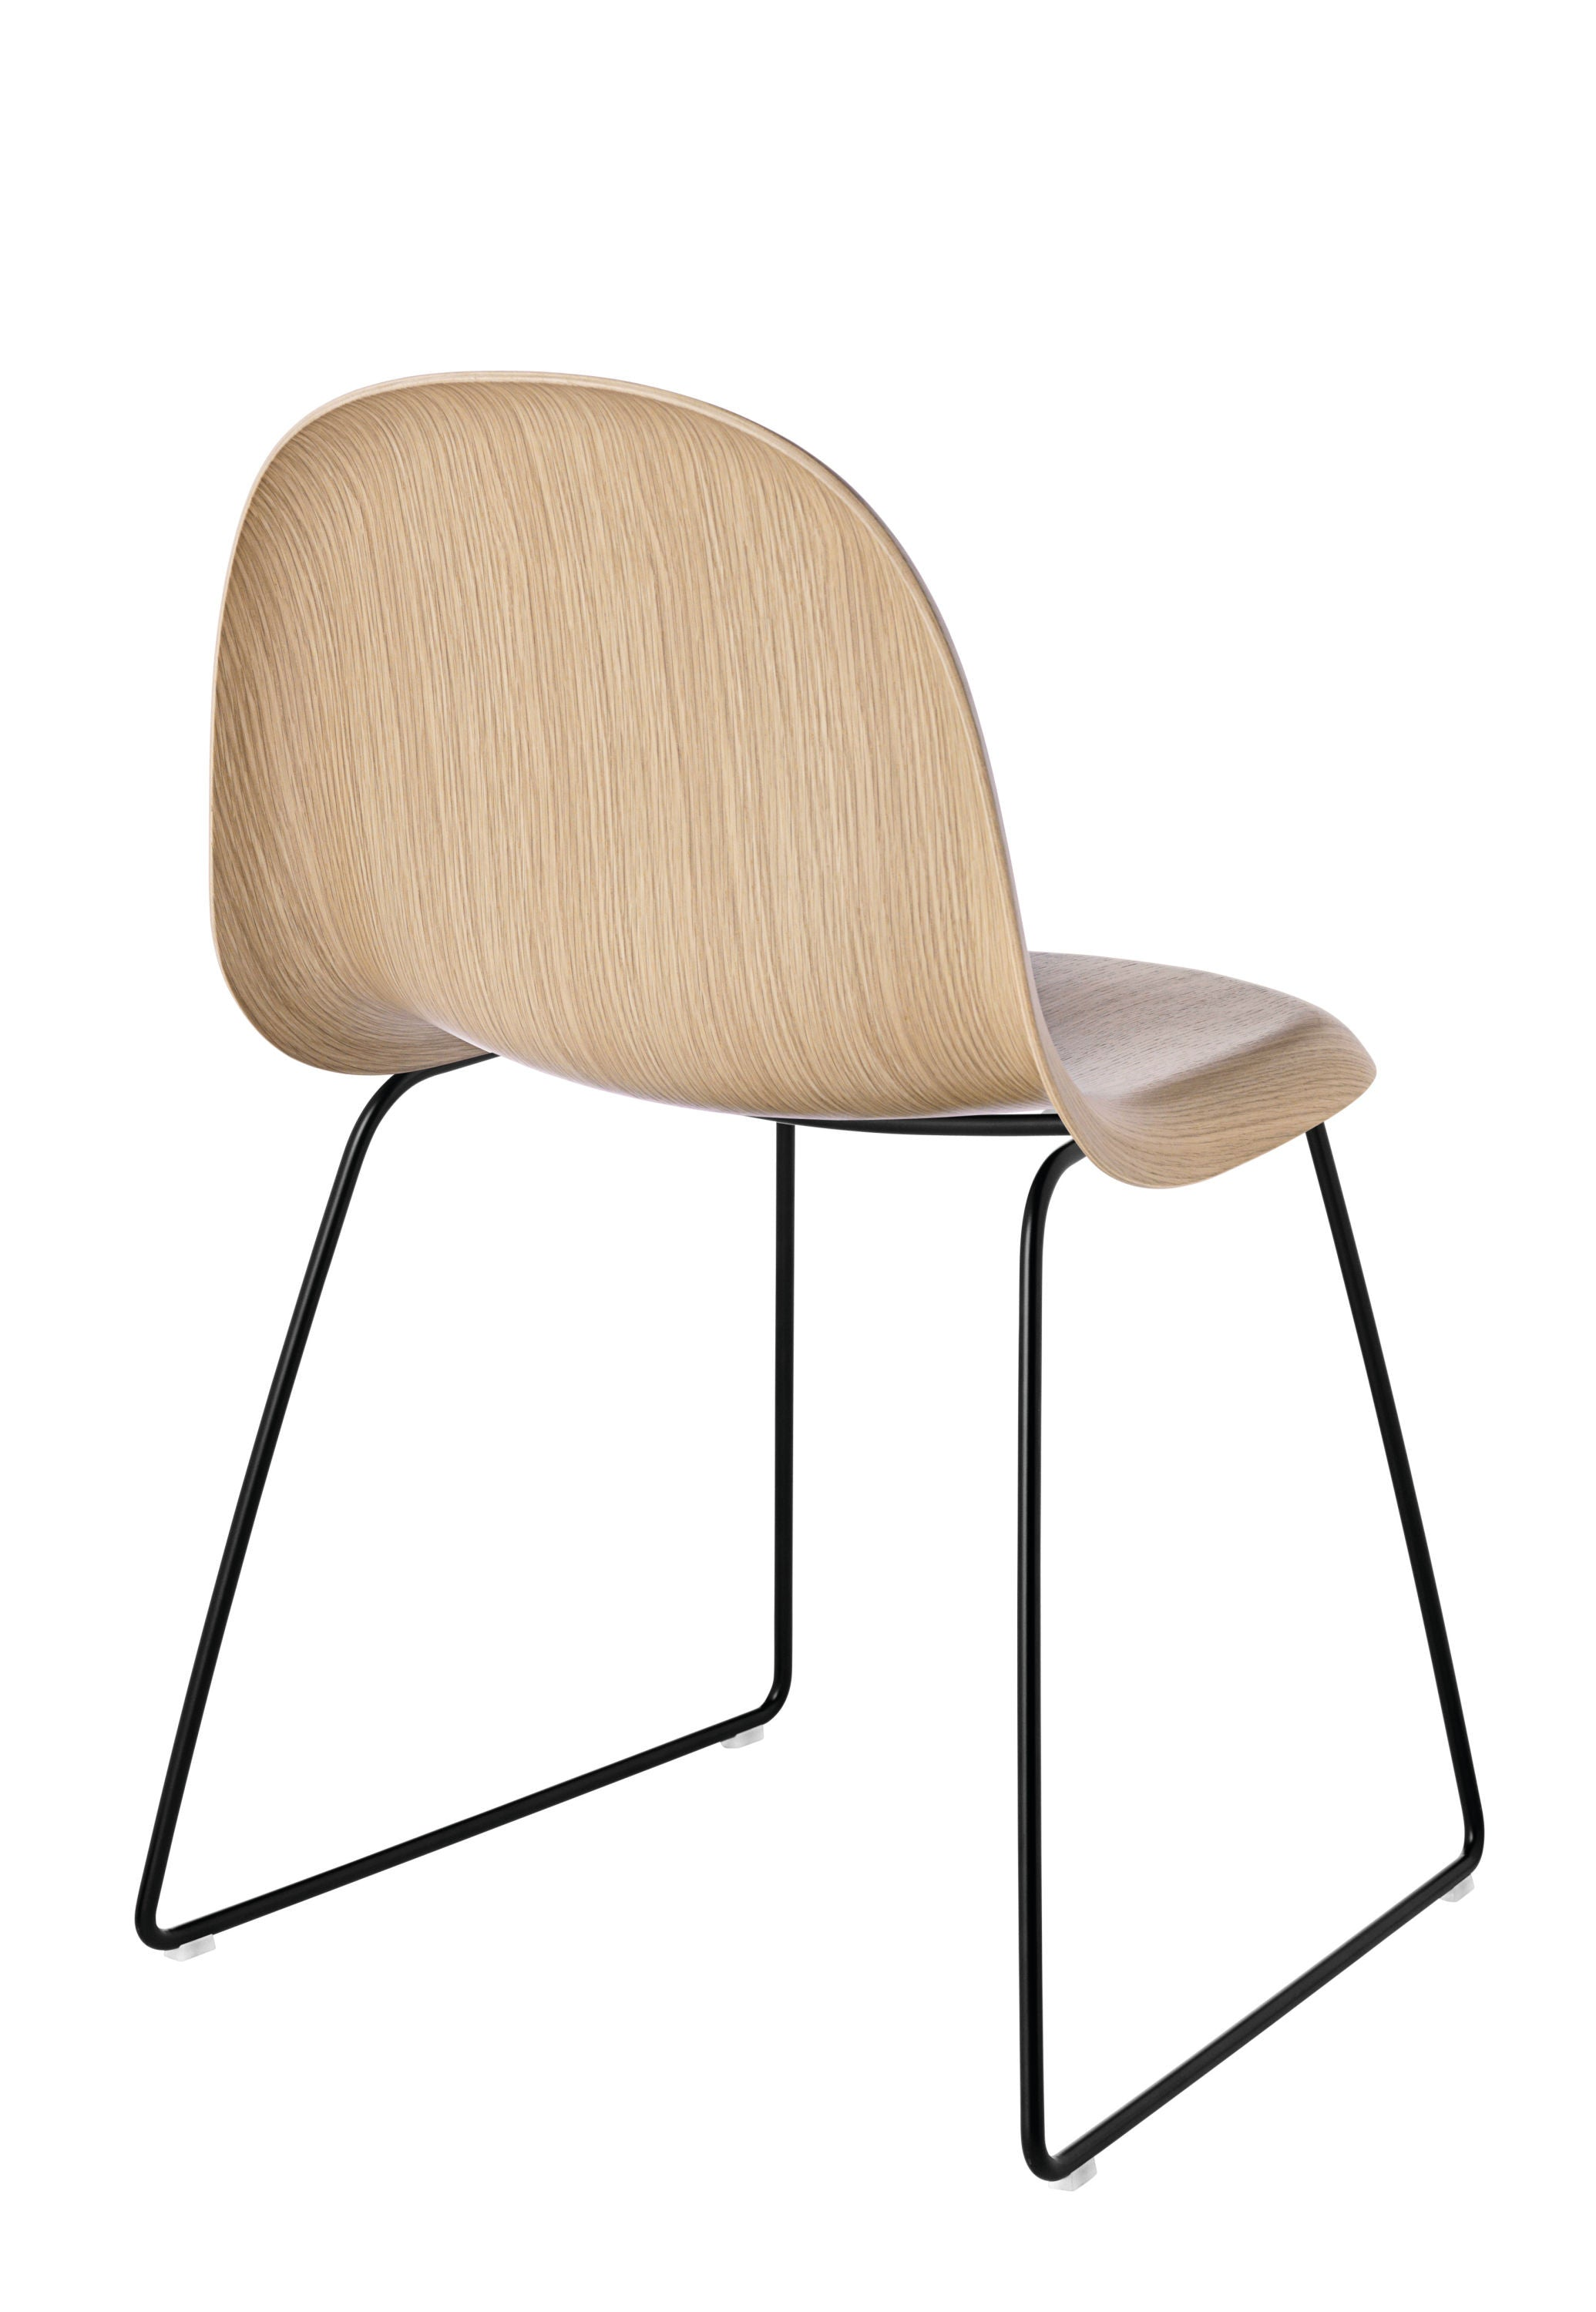 3D Dining Chair - Un-upholstered Sledge Black base, Oak shell fra GUBI